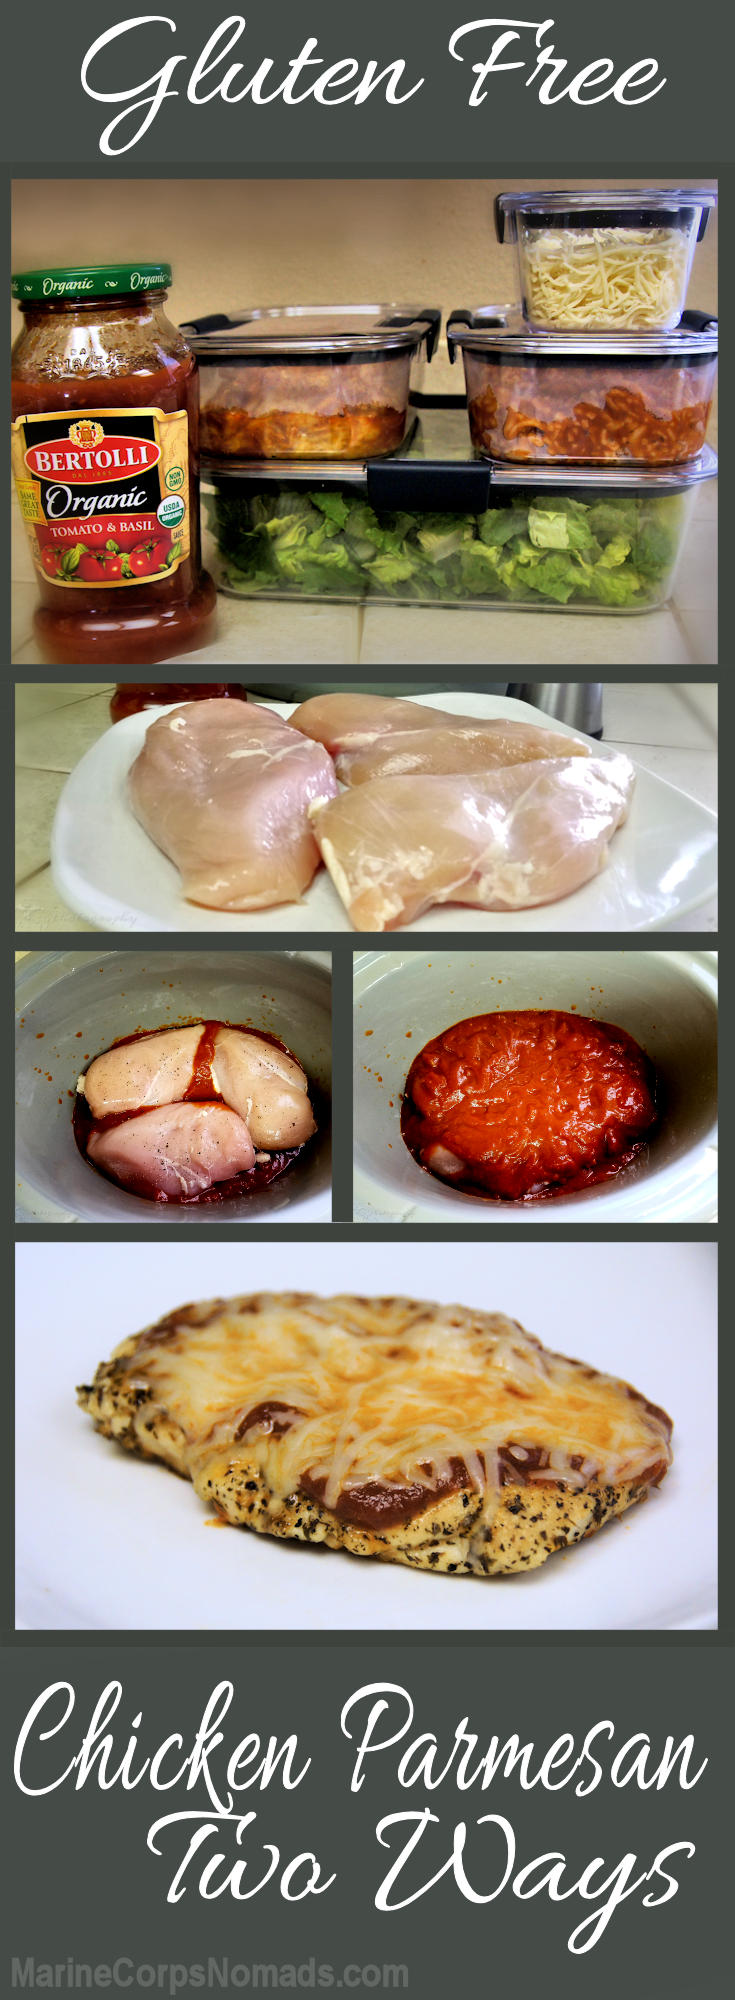 easy chicken parmesan two ways marine corps nomads